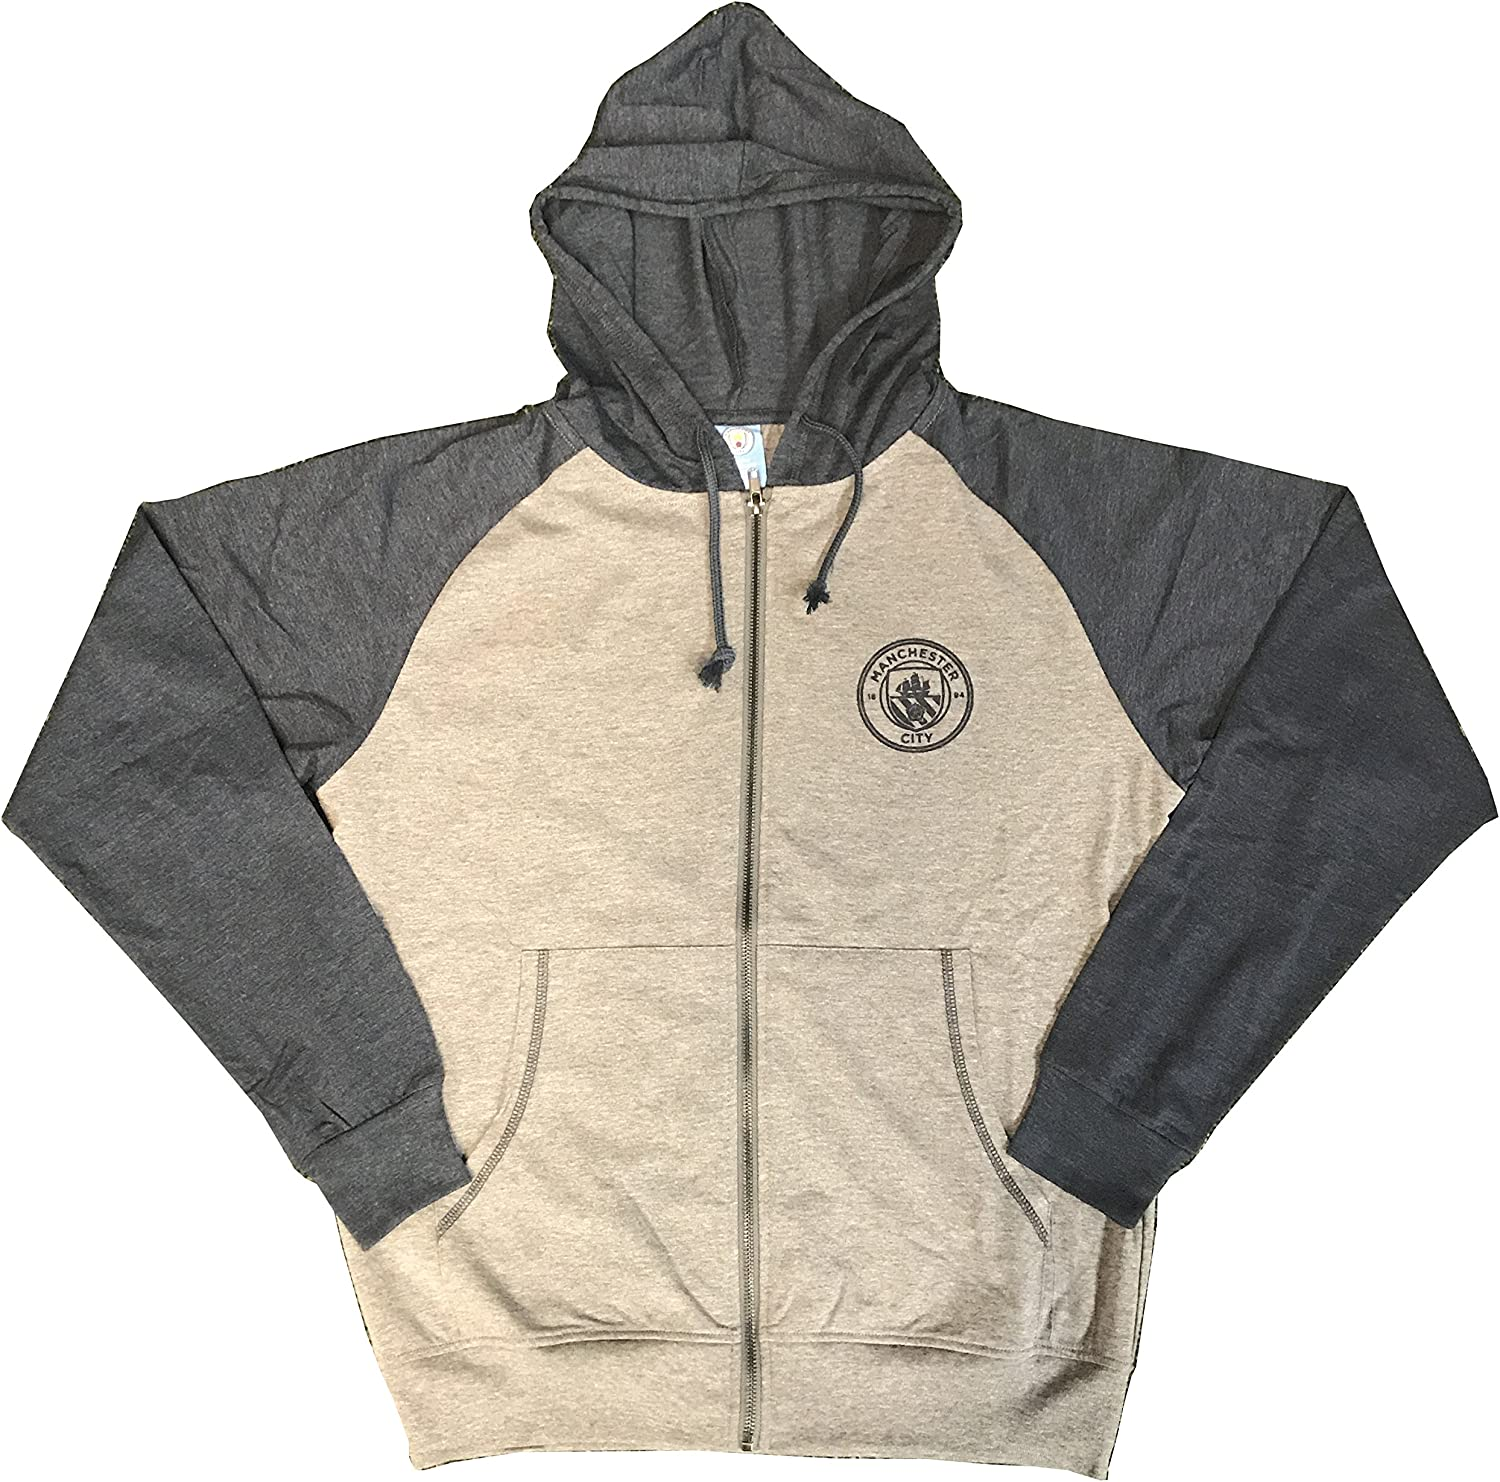 Icon Challenge the lowest price of Japan Sports Boys UEFA Champions Lightweig Soccer Full-Zip League Max 61% OFF